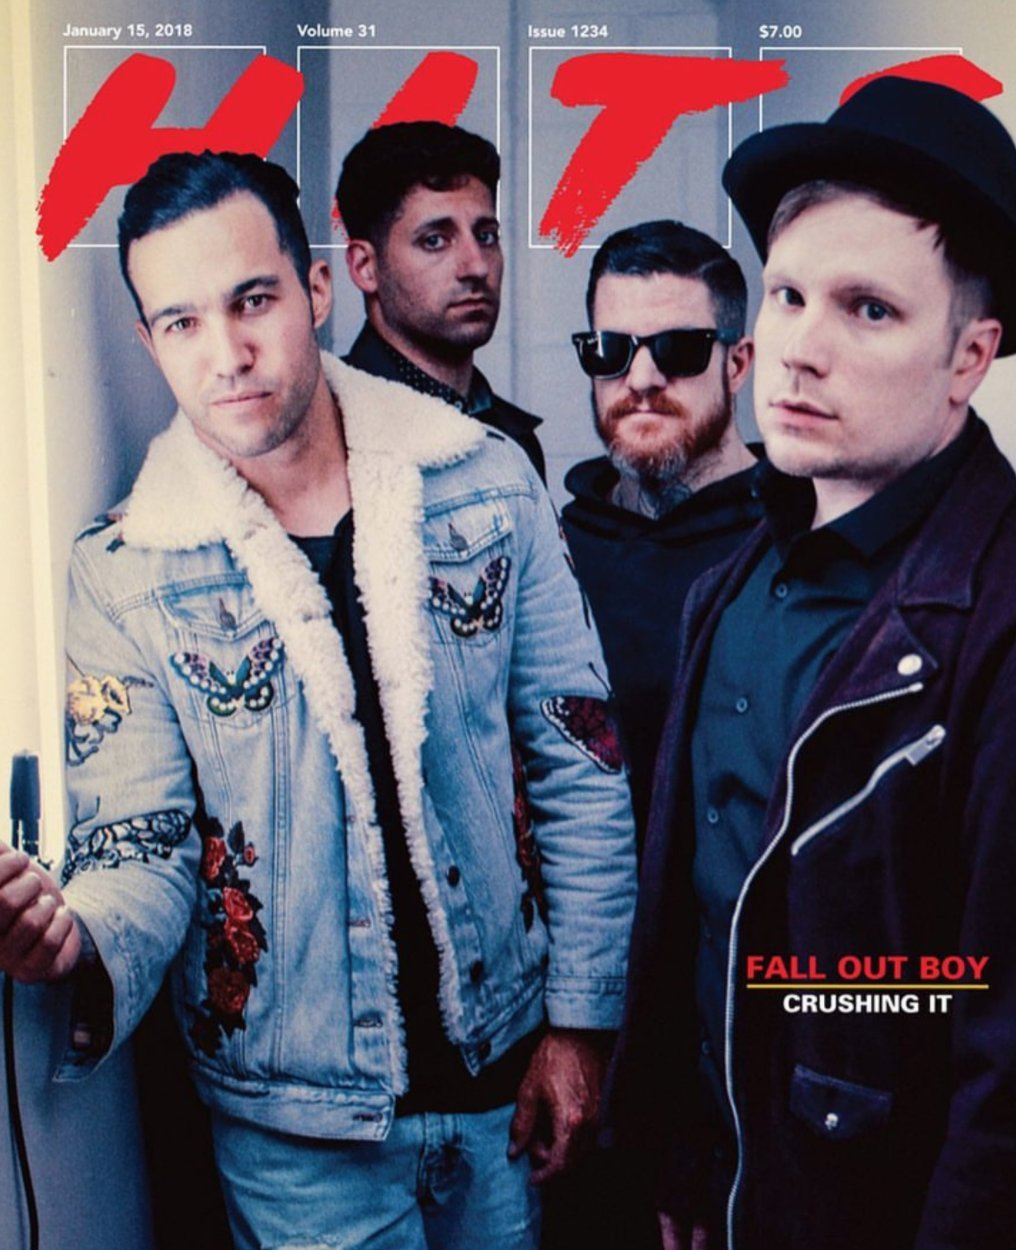 staring deep into @hitsdd's soul on the cover of this week's mag �� https://t.co/auRo019qZS